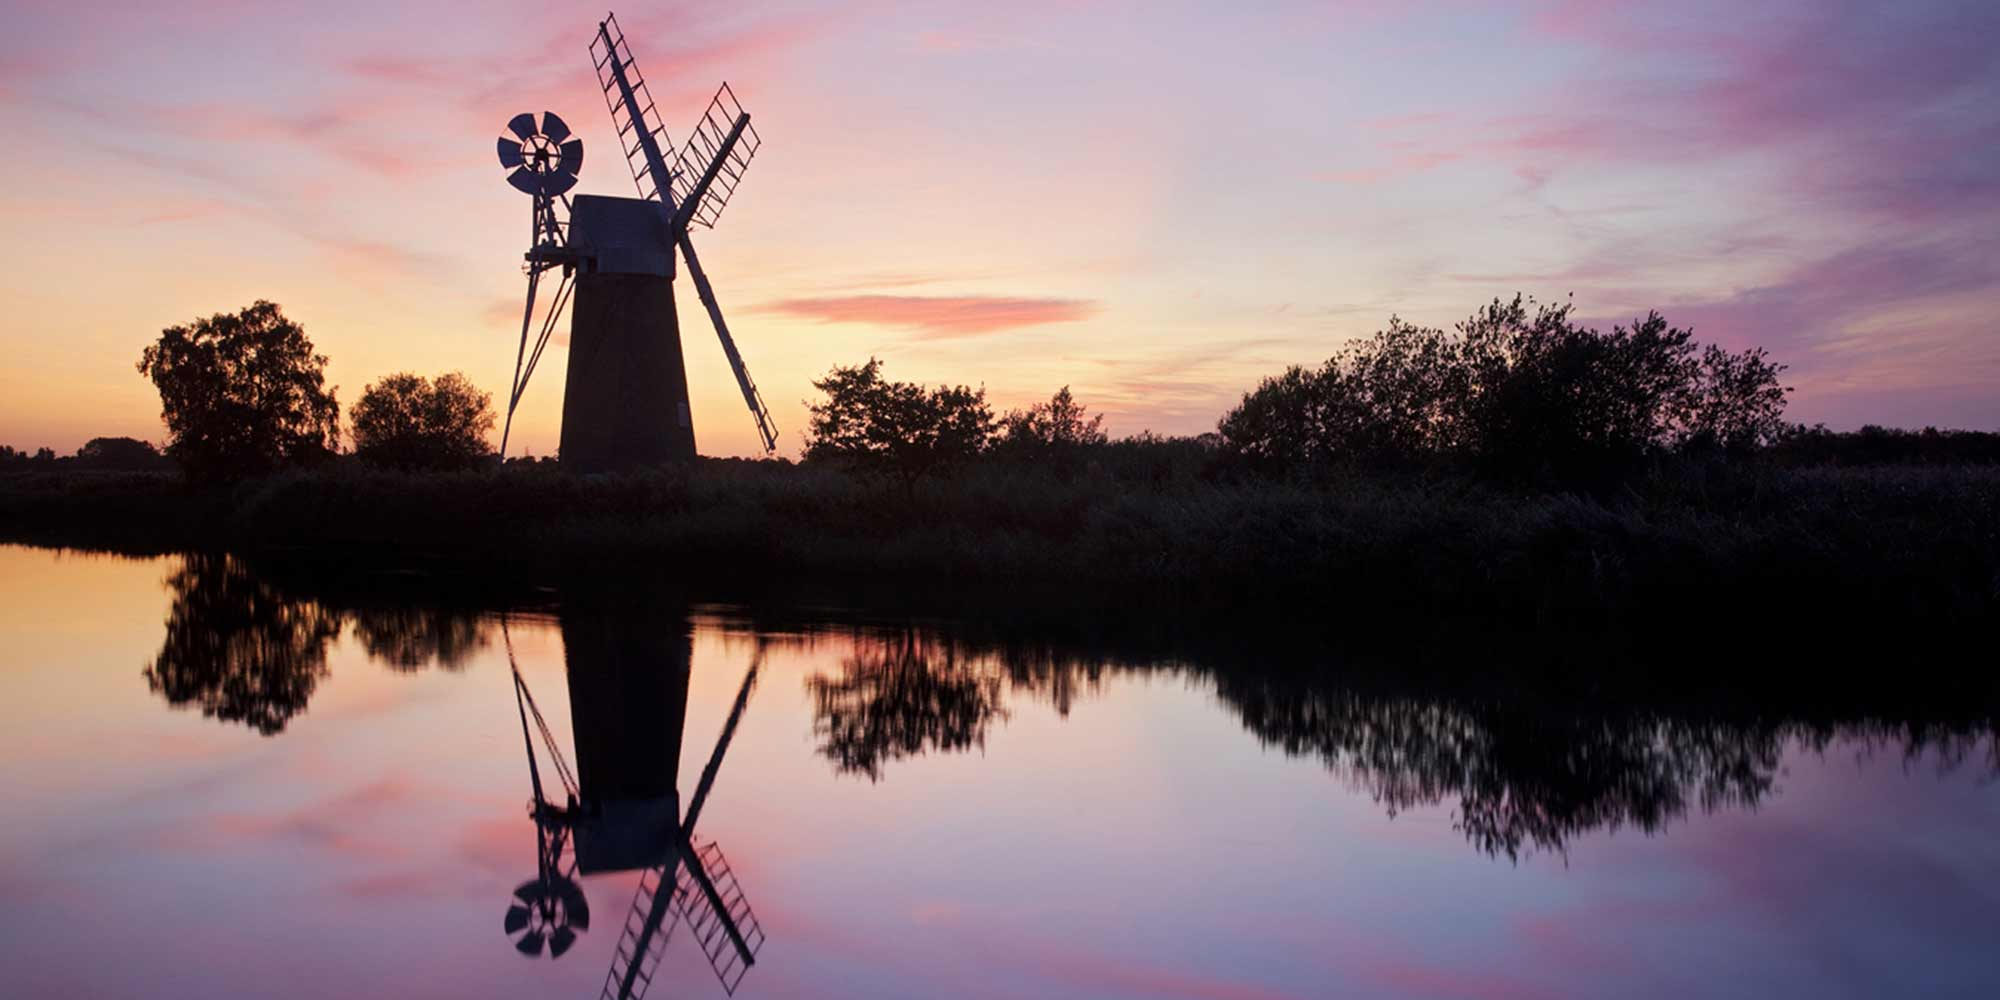 A windmill silhouetted against a pink sky and reflected in a river